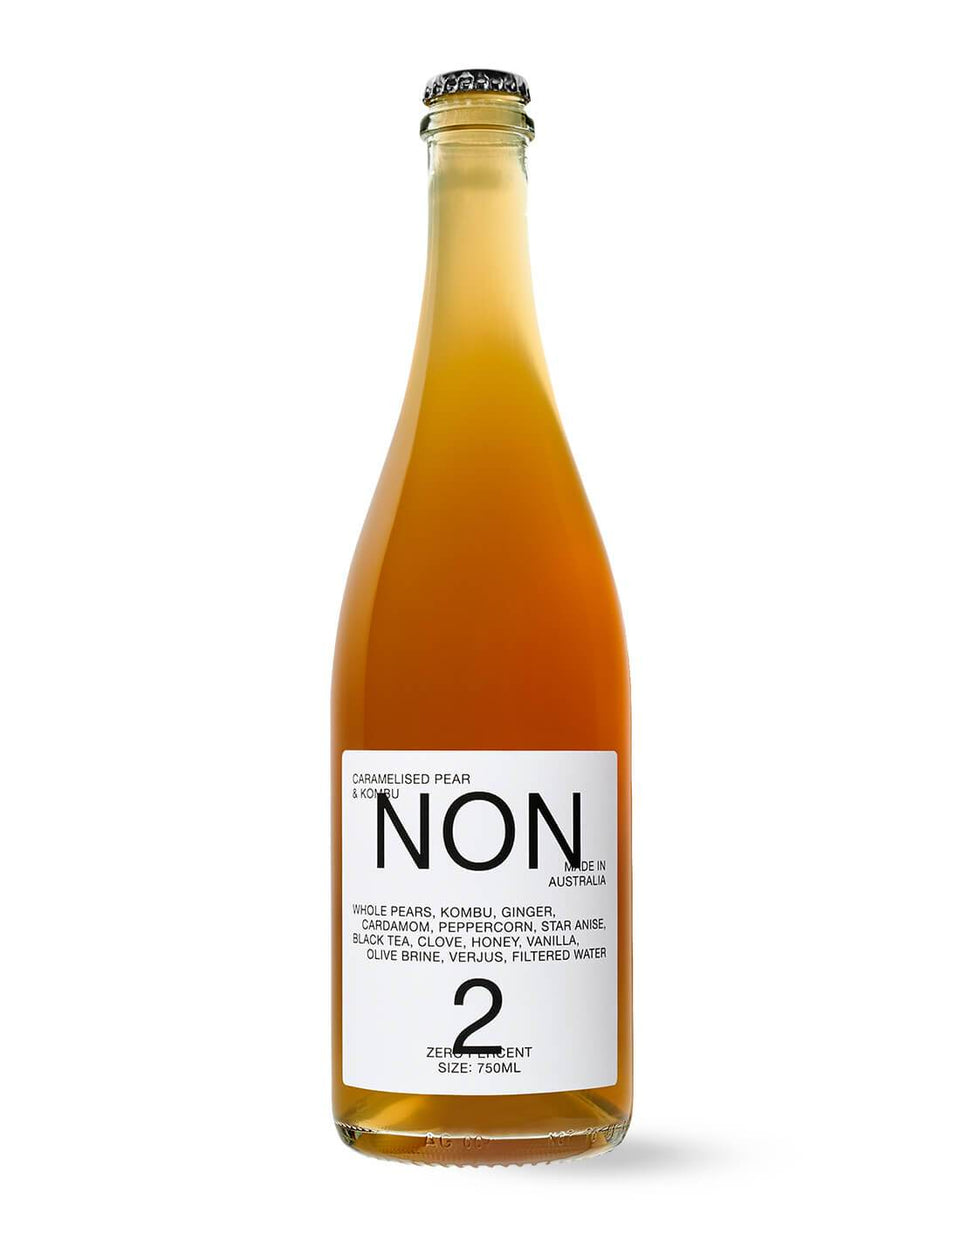 NON 2 Caramelised Pear & Kombu 750mL